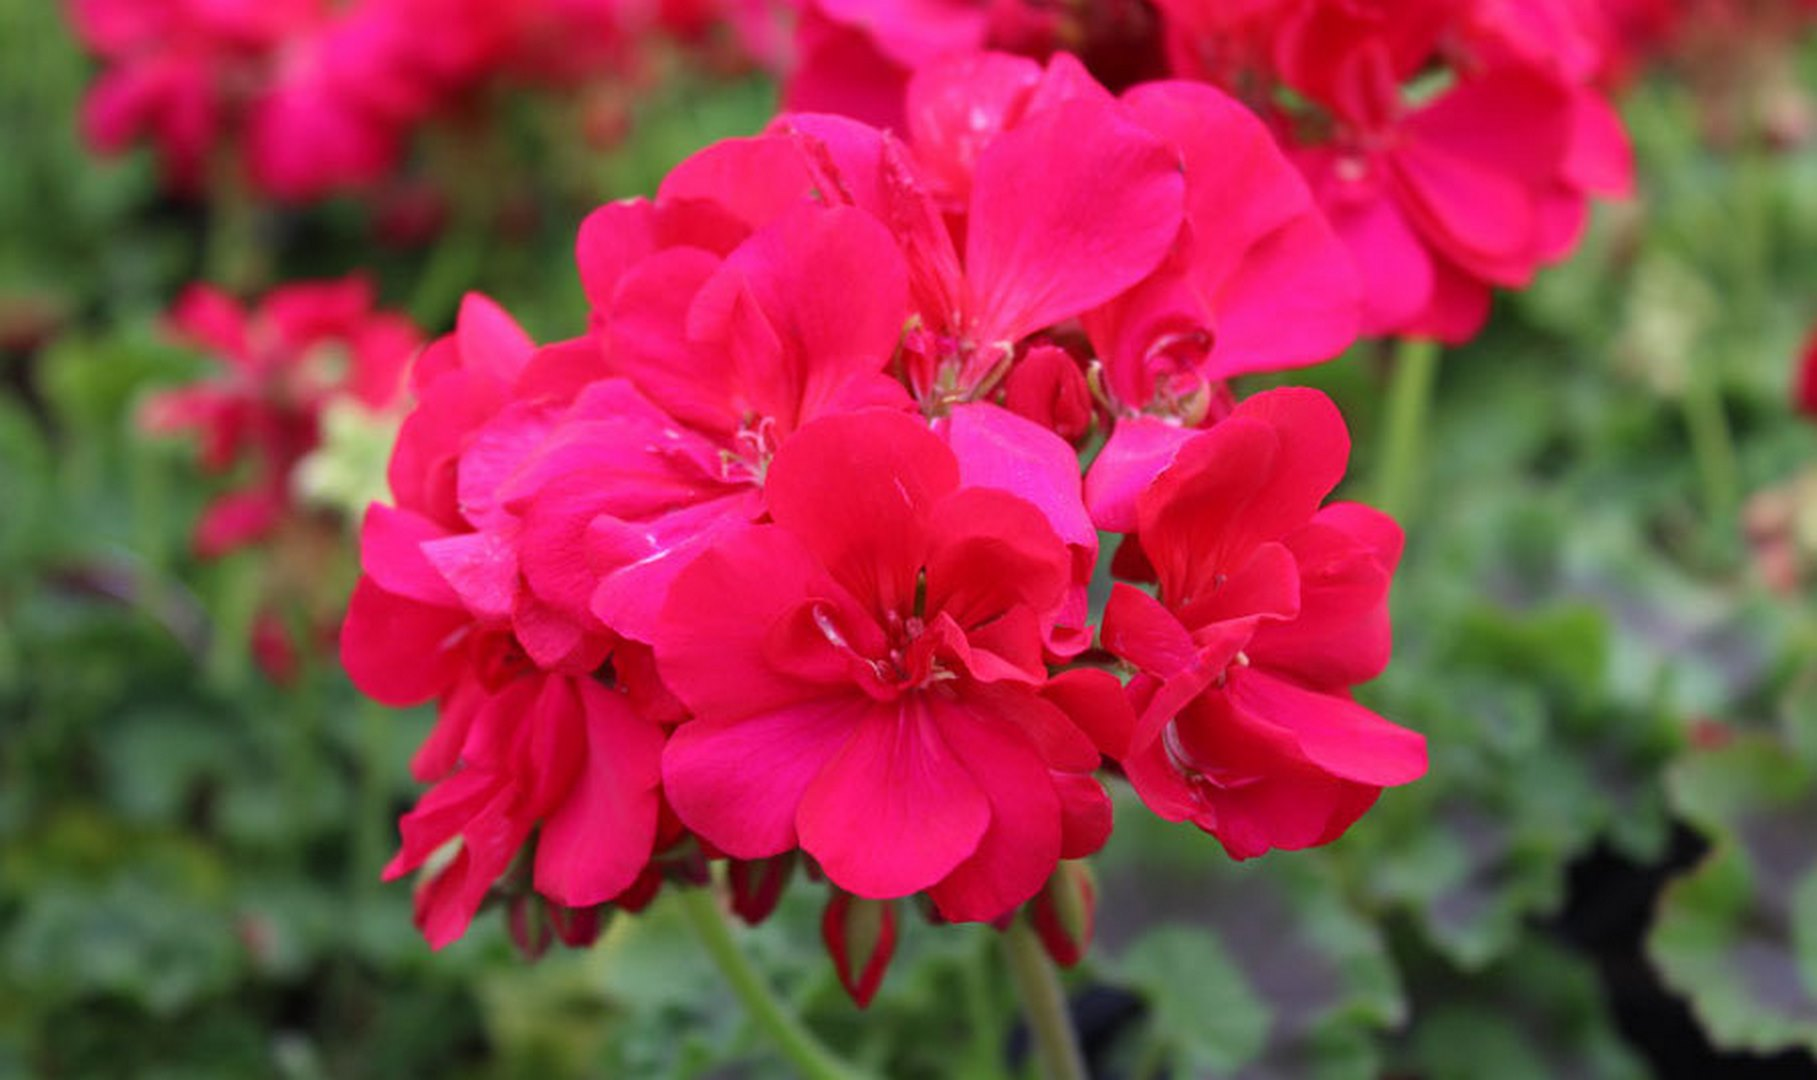 Géranium Zonal Calliope 'Hot Rose' Pelargonium interspecific